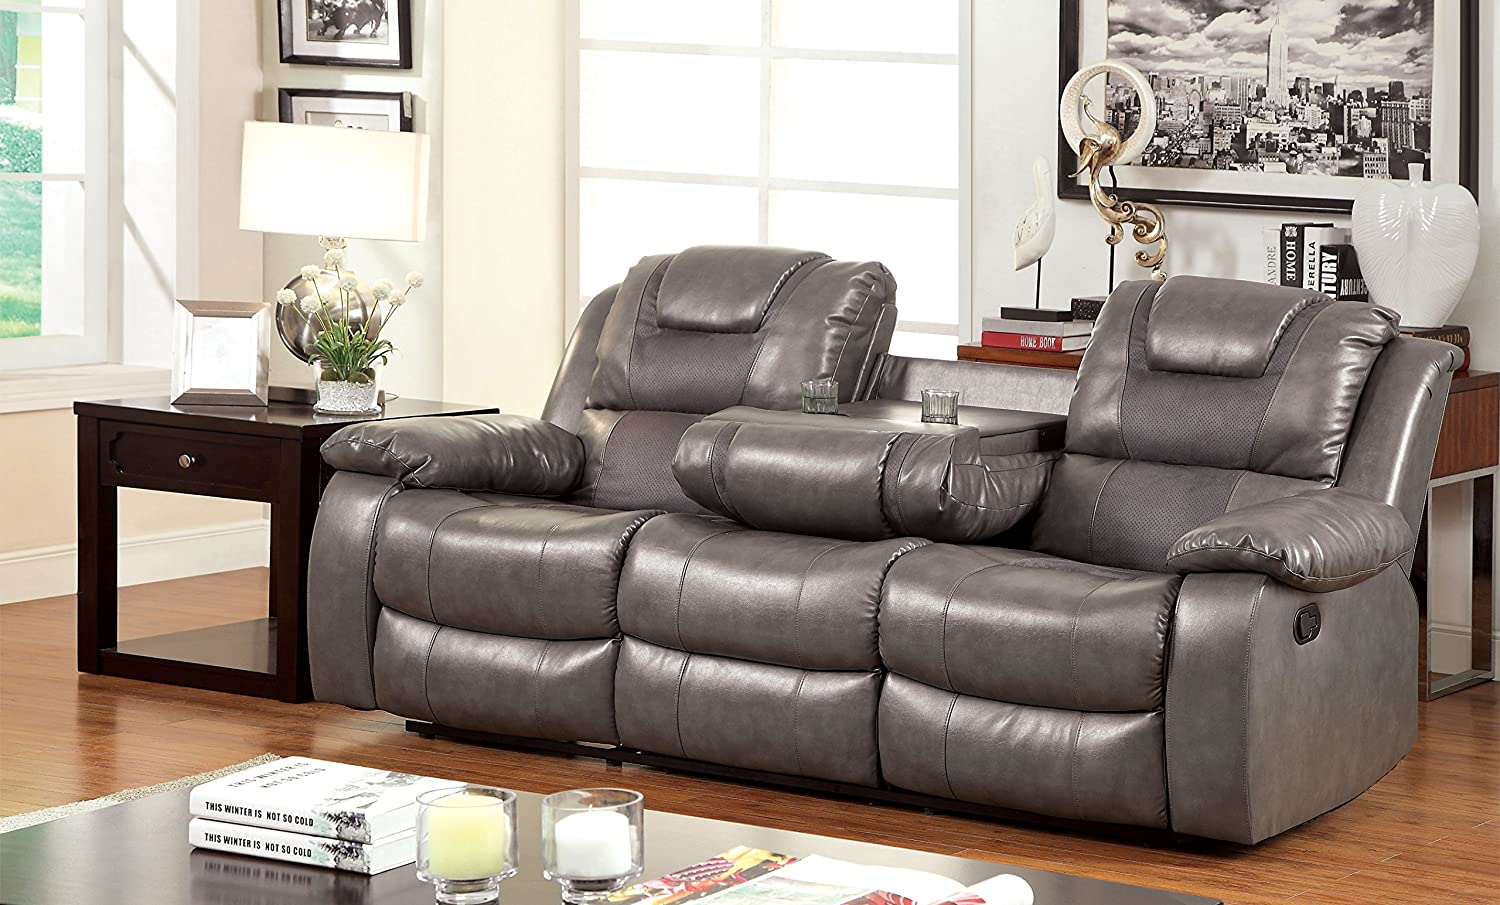 Amazon.com: Furniture Of America Steely 2 Recliner Sofa: Kitchen U0026 Dining